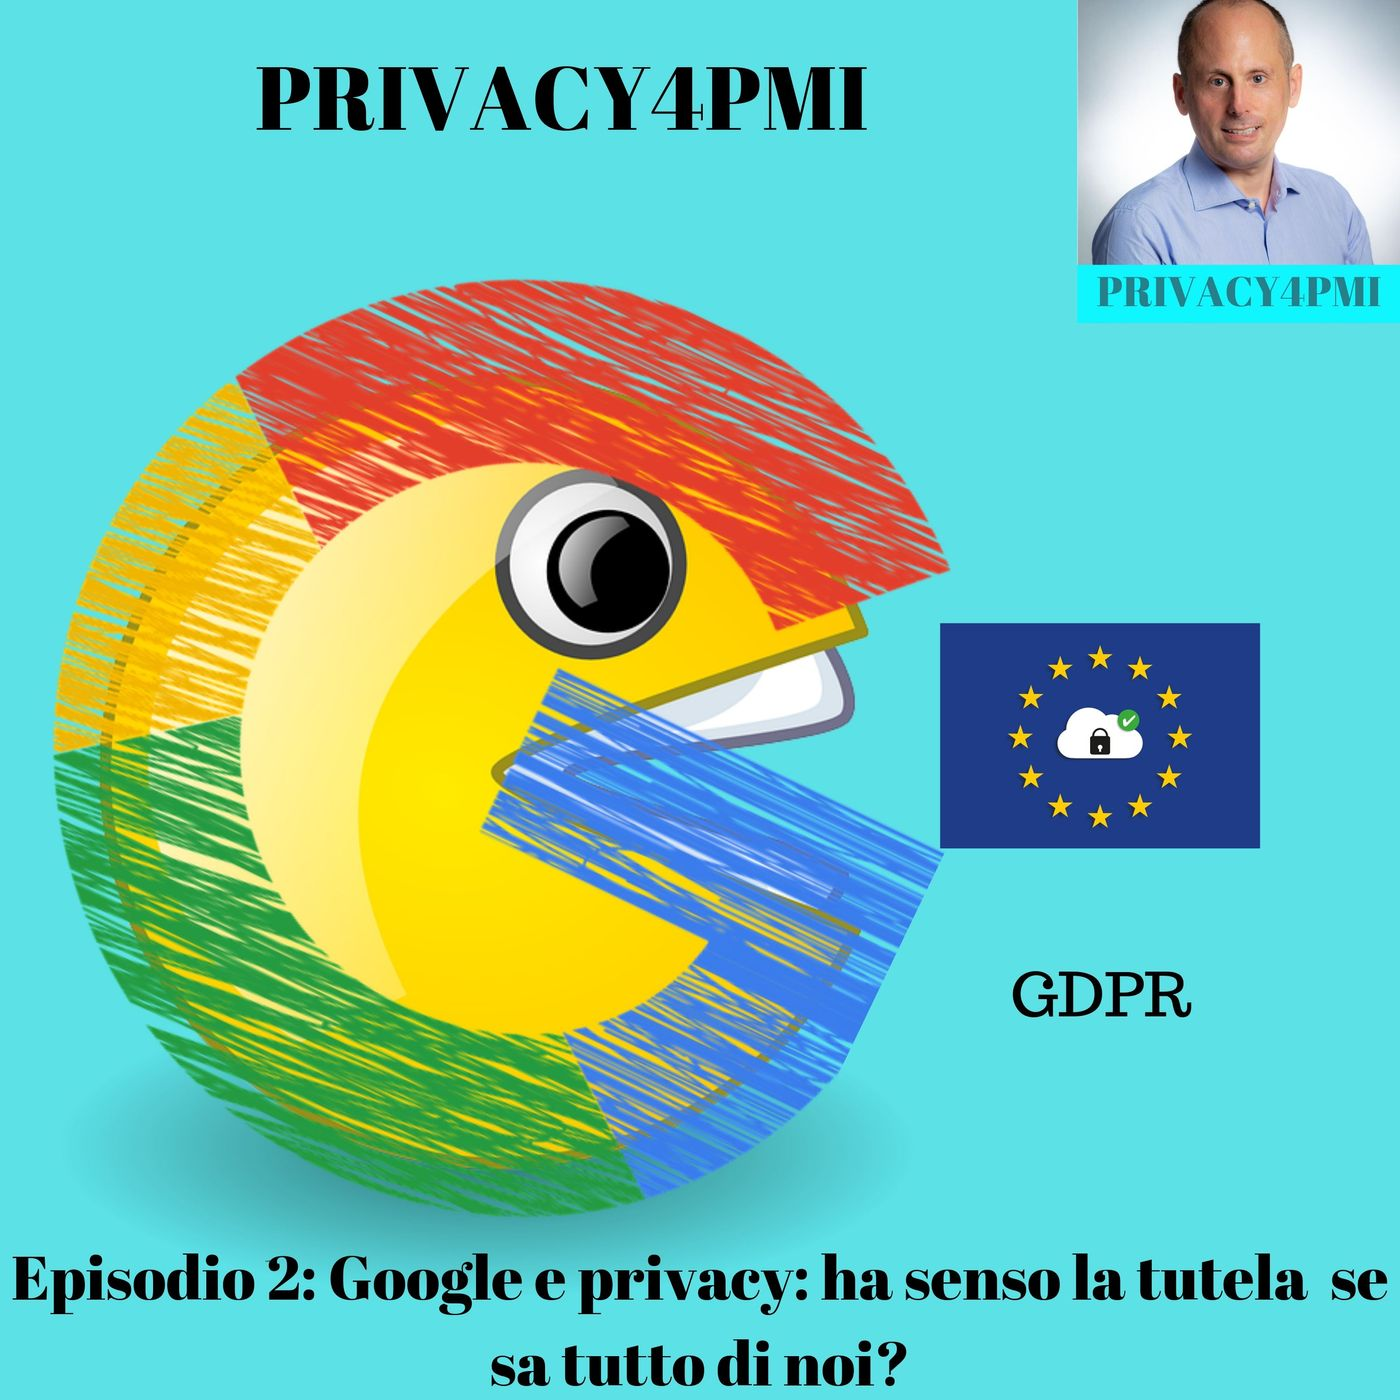 Episodio 2 Google e privacy. Ha senso la tutela se sa tutto di noi?